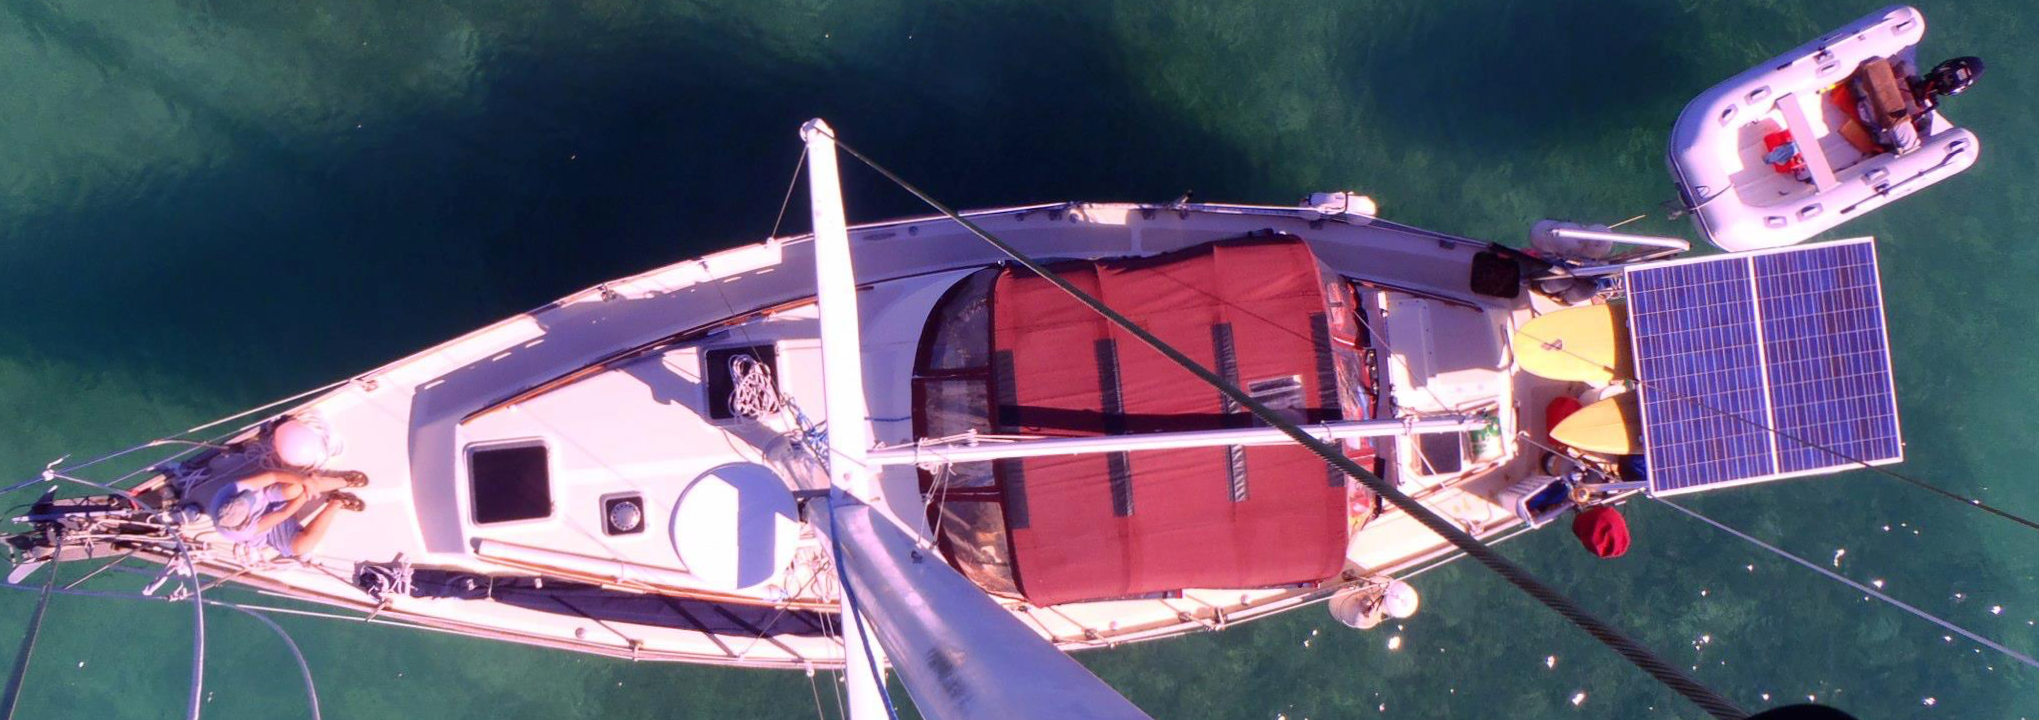 Esprit topsiview from the mast – cropped.png